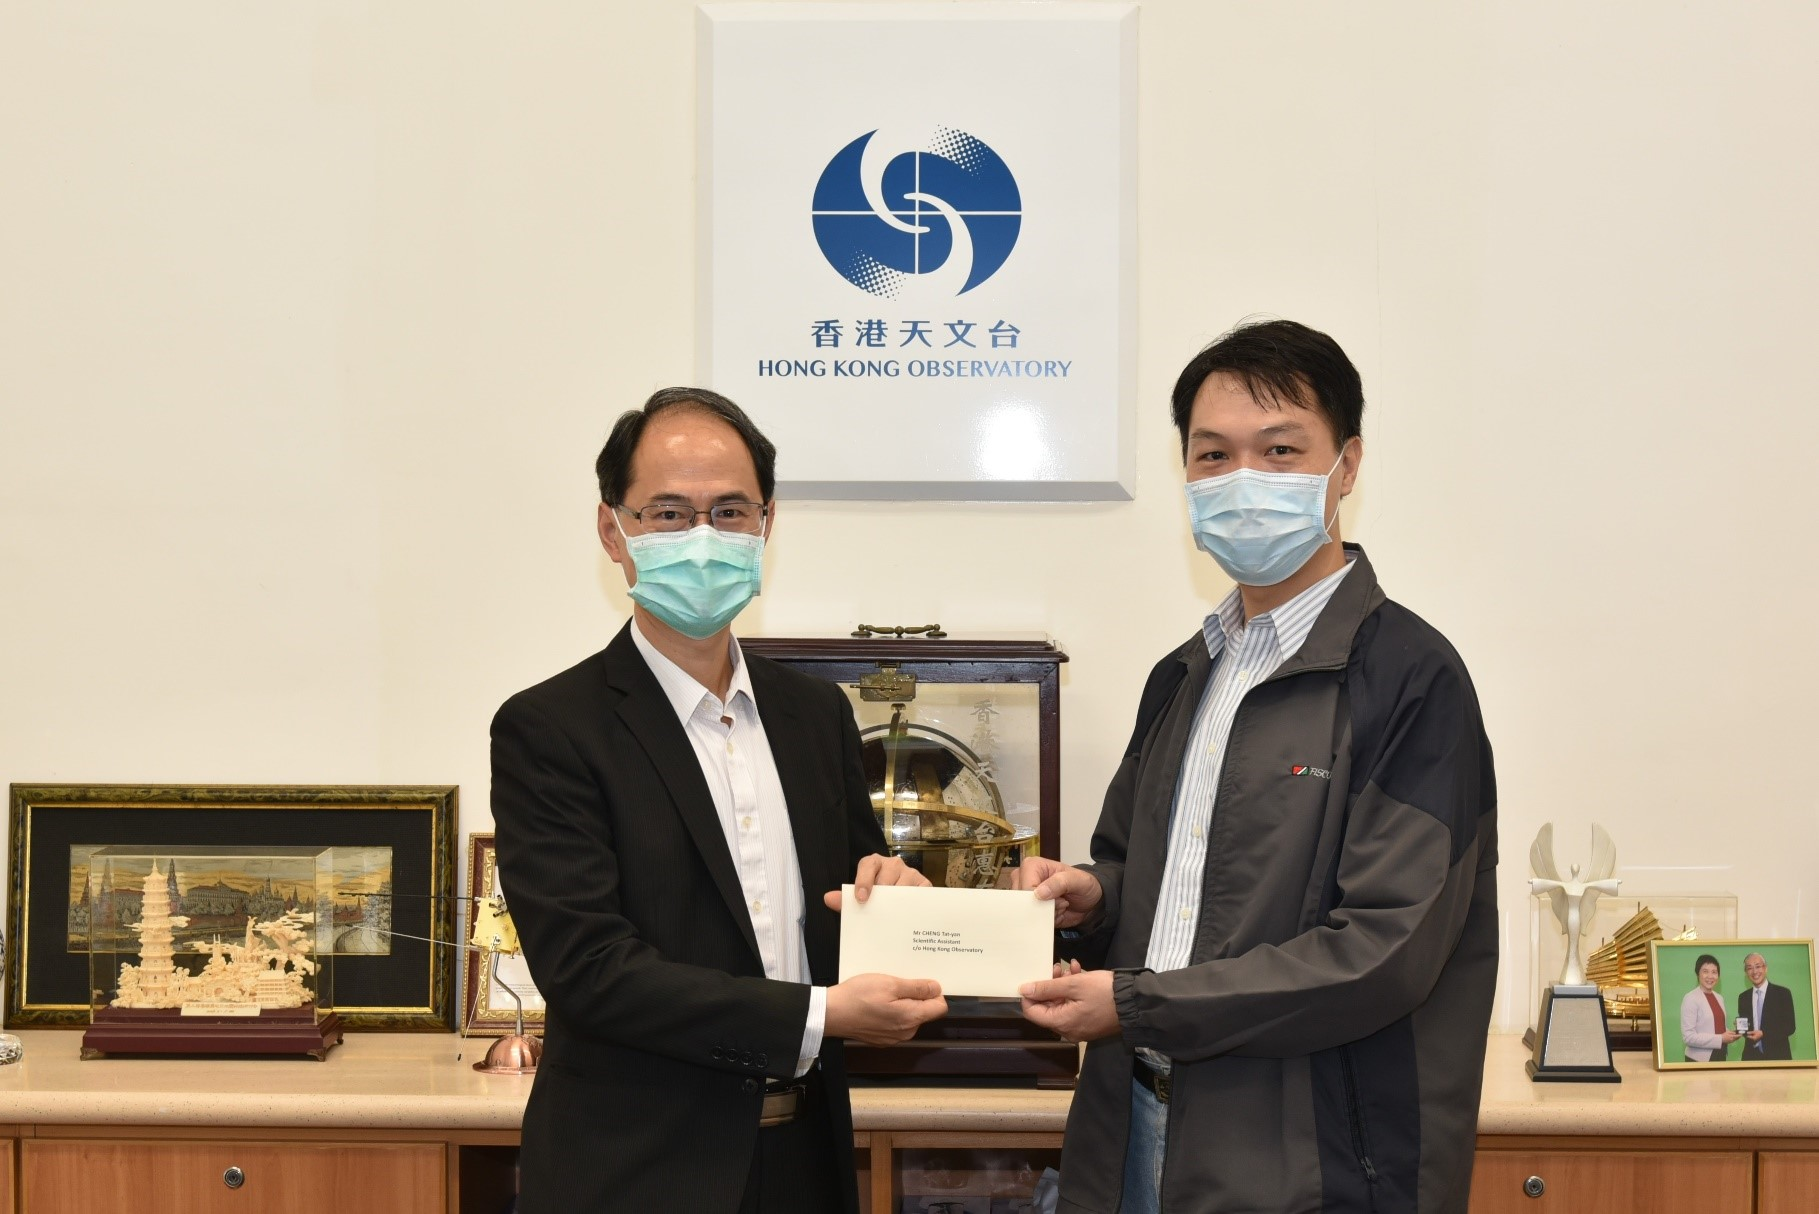 Mr Cheng Tat-yan (right) was promoted to Senior Scientific Assistant